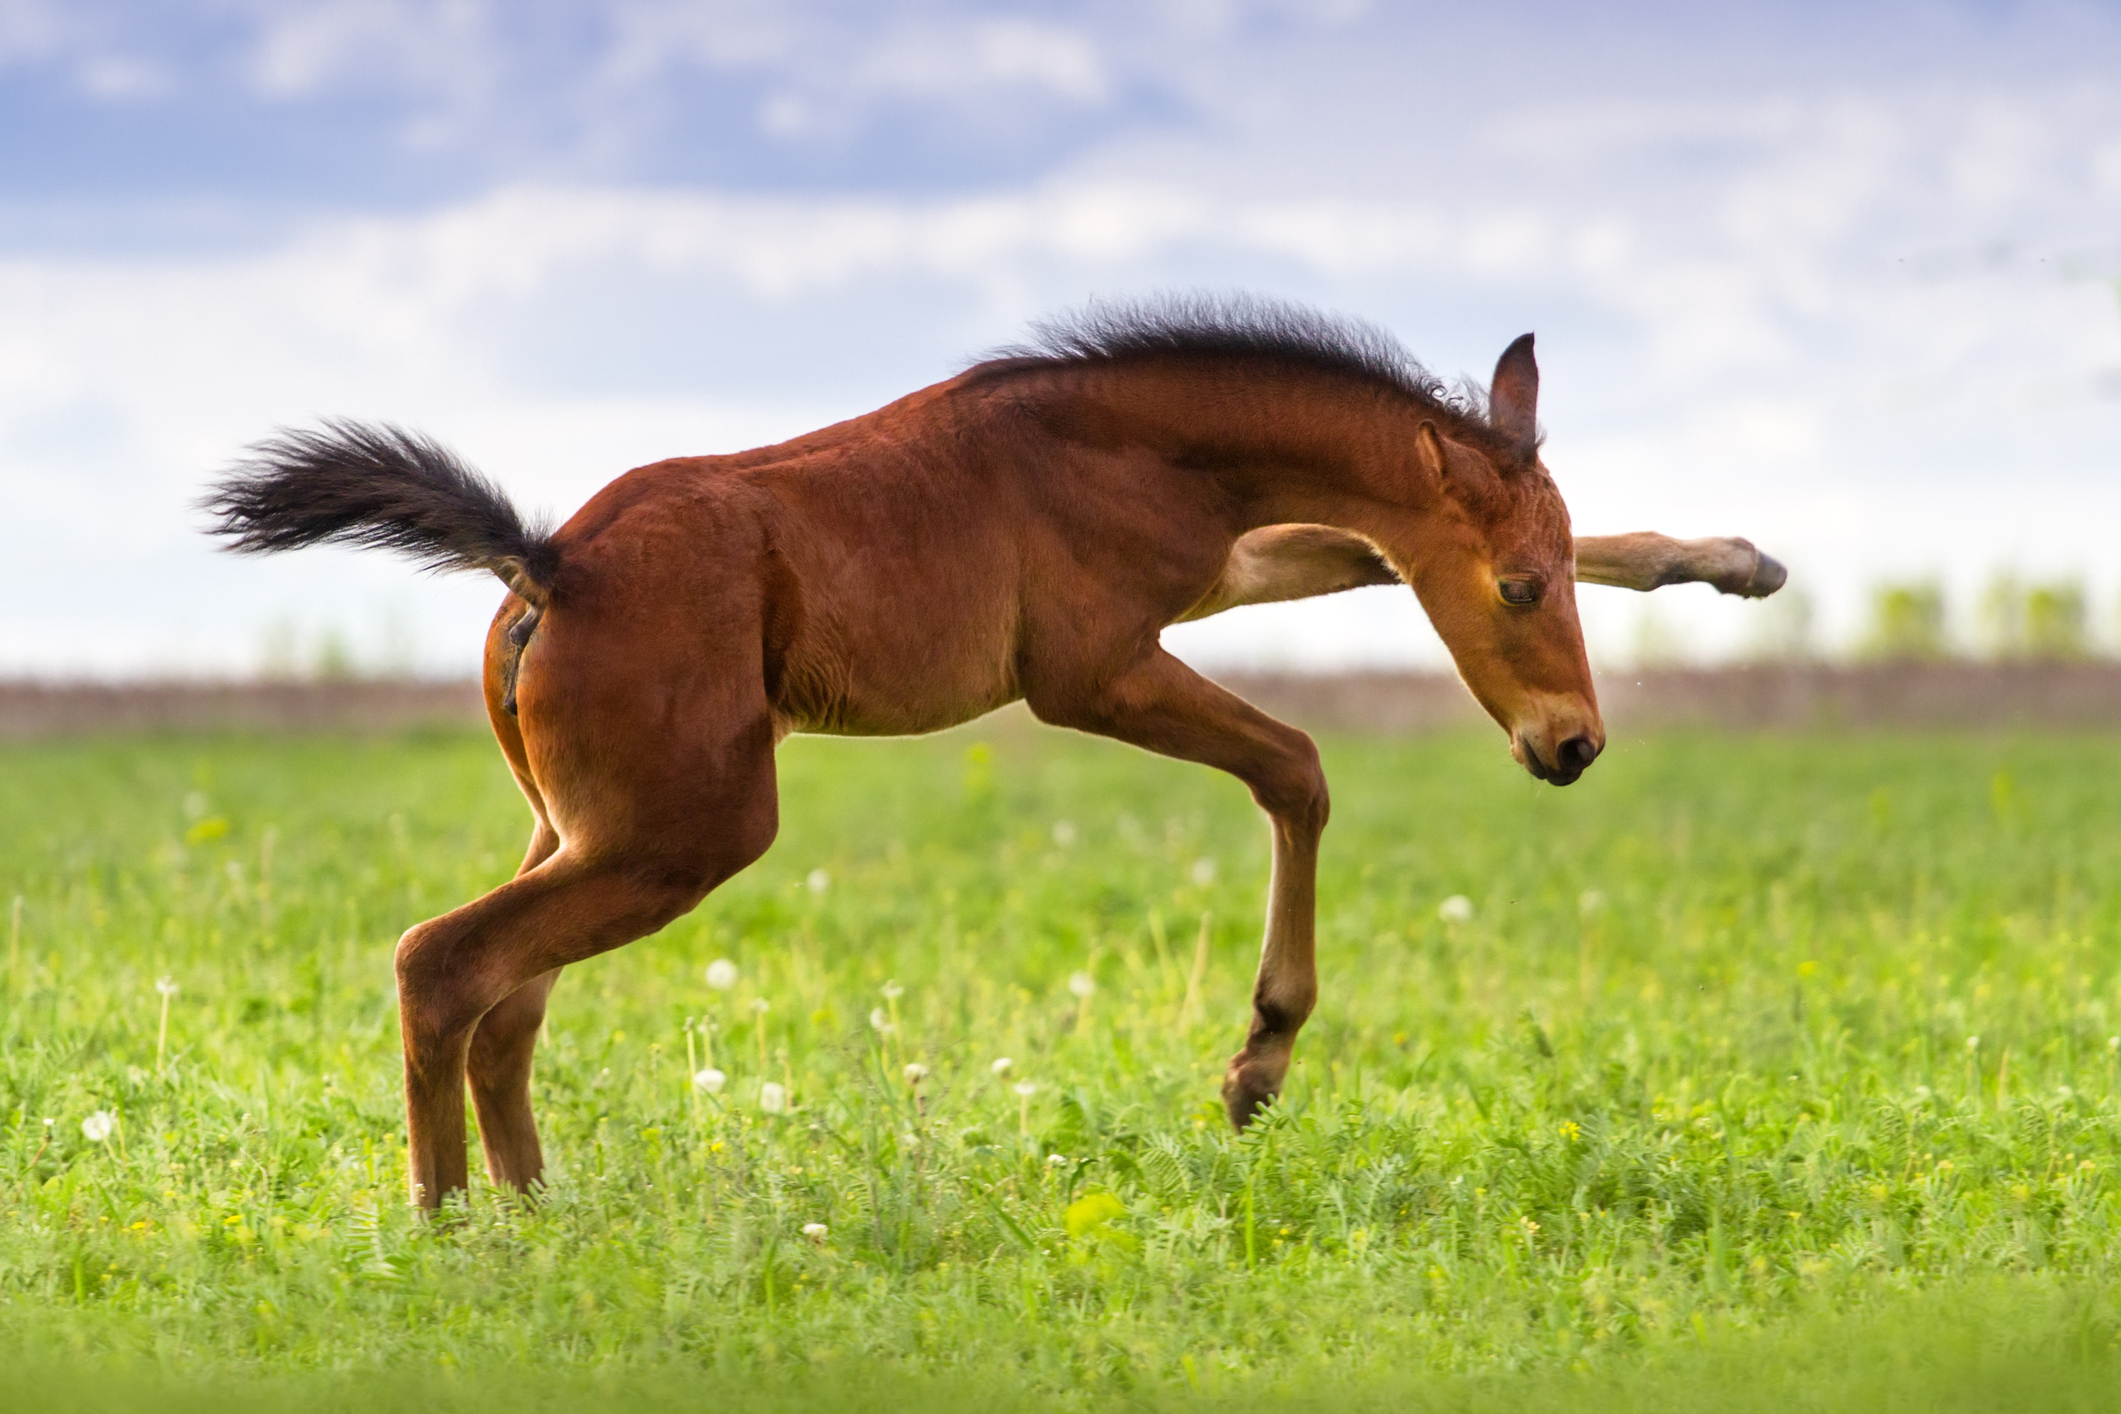 Playing foal